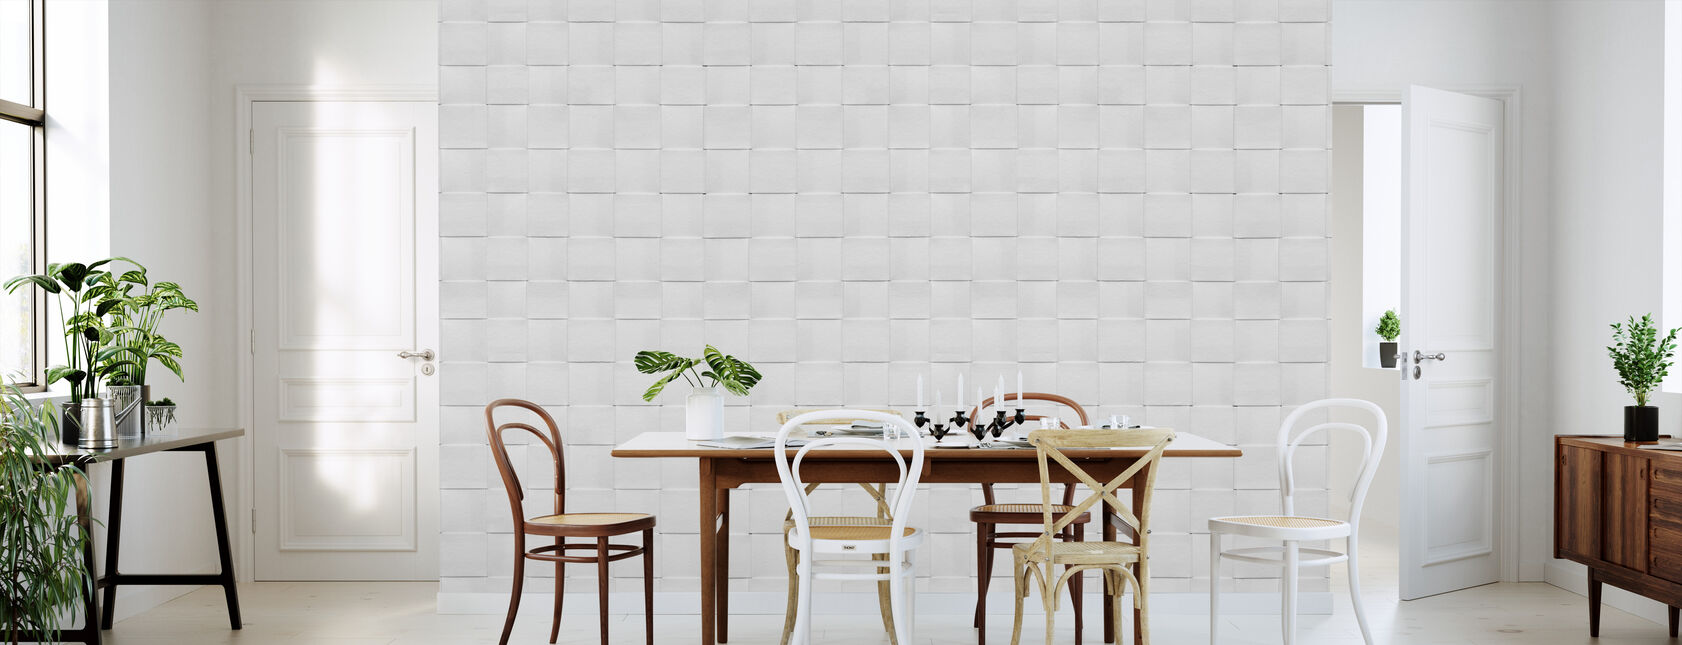 Paper Recycling - Wallpaper - Kitchen